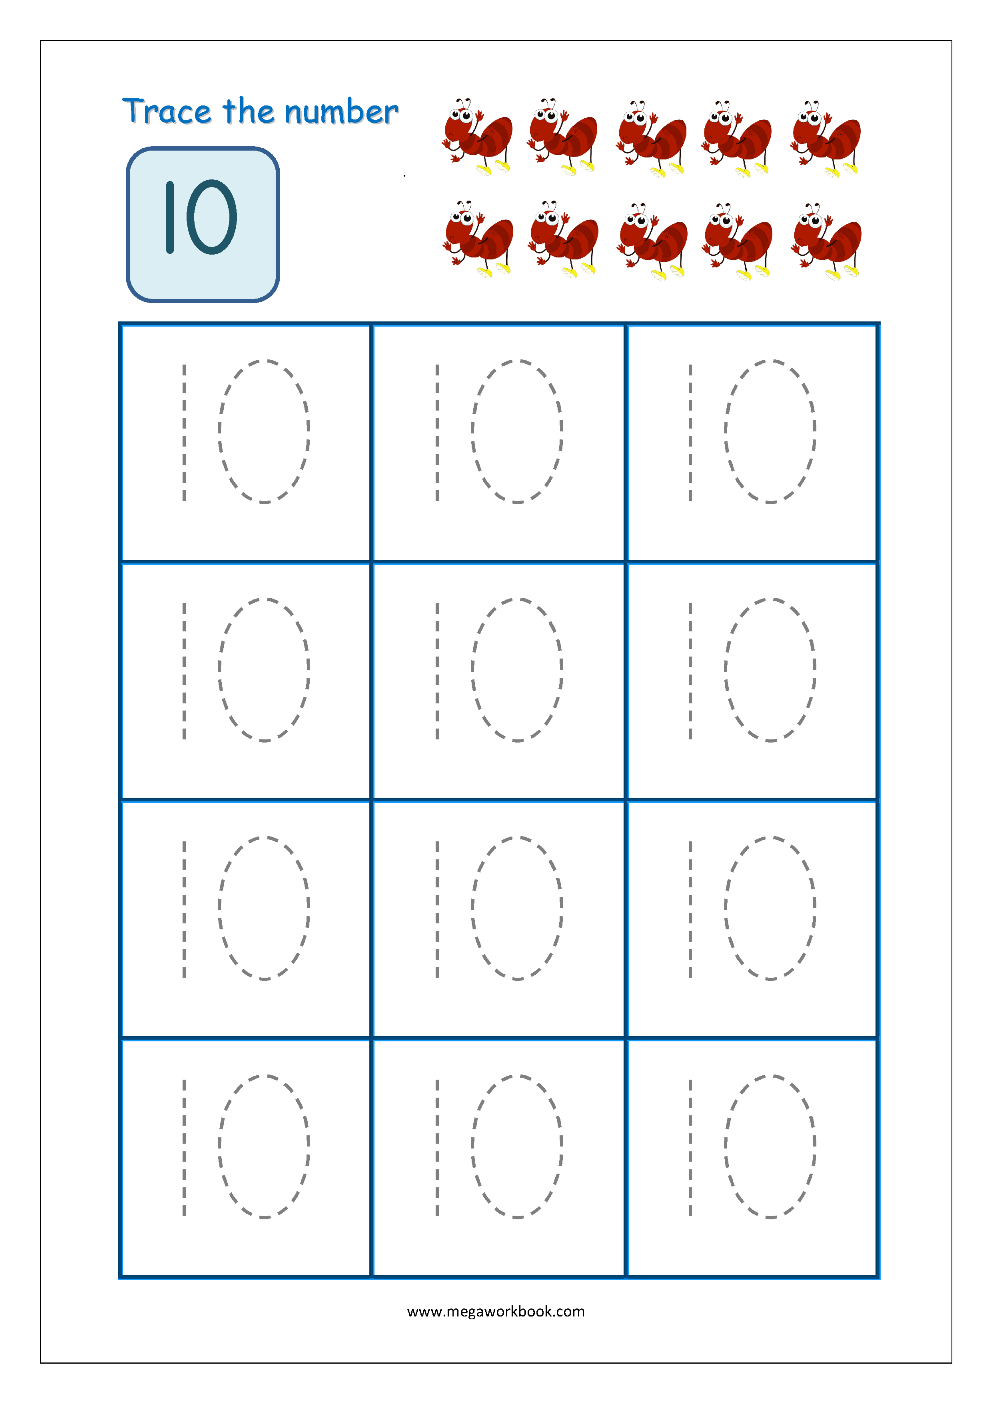 Number Tracing - Tracing Numbers - Number Tracing Worksheets with Letter 10 Worksheets